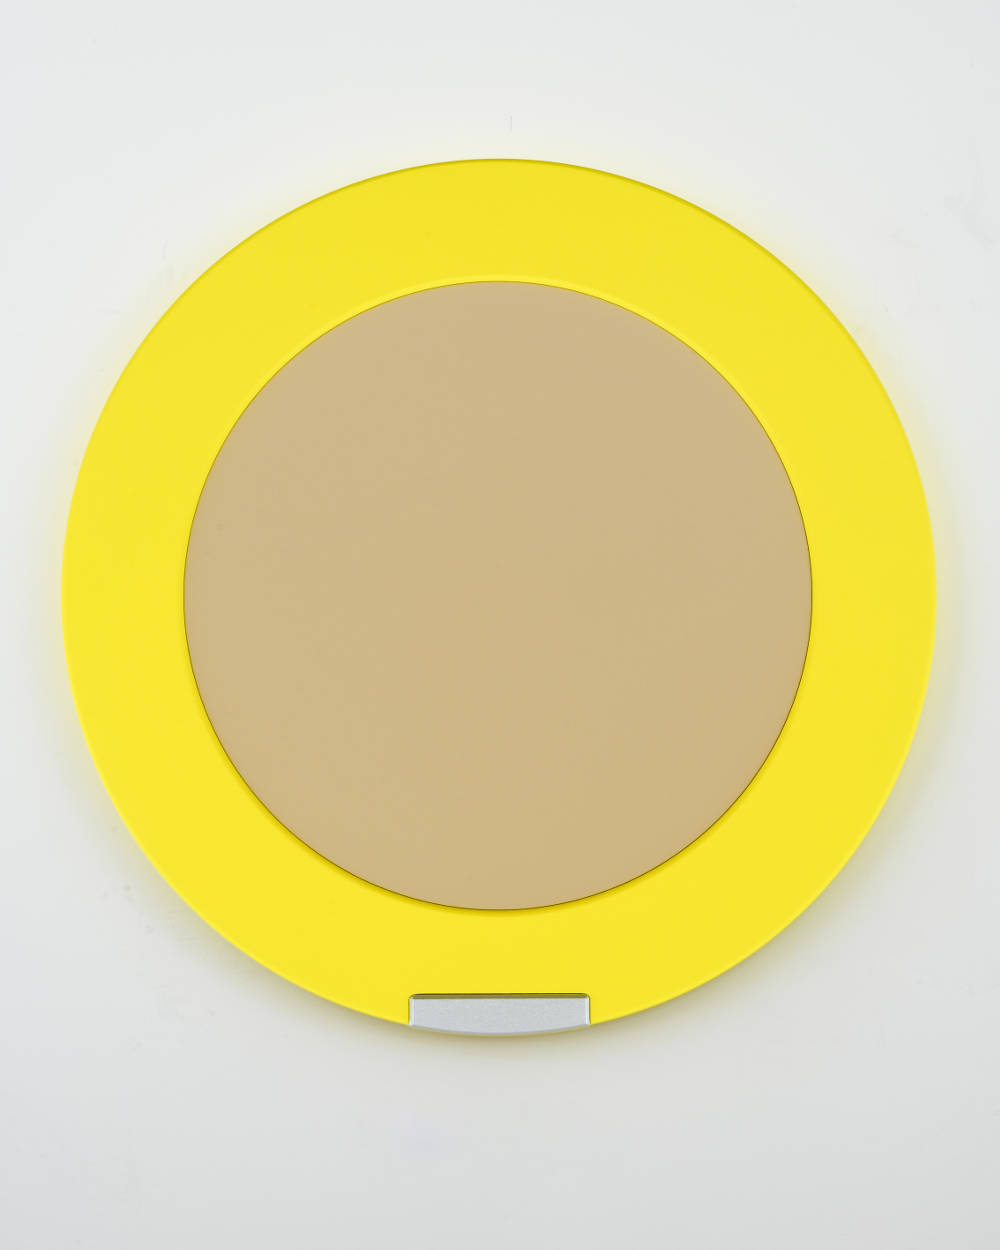 Sylvie Fleury, Moderately Fair SPF 30, 2018. Acrylic on canvas on wood 10 kgs 125 x 125 x 6 cm (49,21 x 49,21 x 2,36 in) Courtesy Galerie Thaddaeus Ropac, London / Paris / Salzburg © Sylvie Fleury. Photo: Charles Duprat